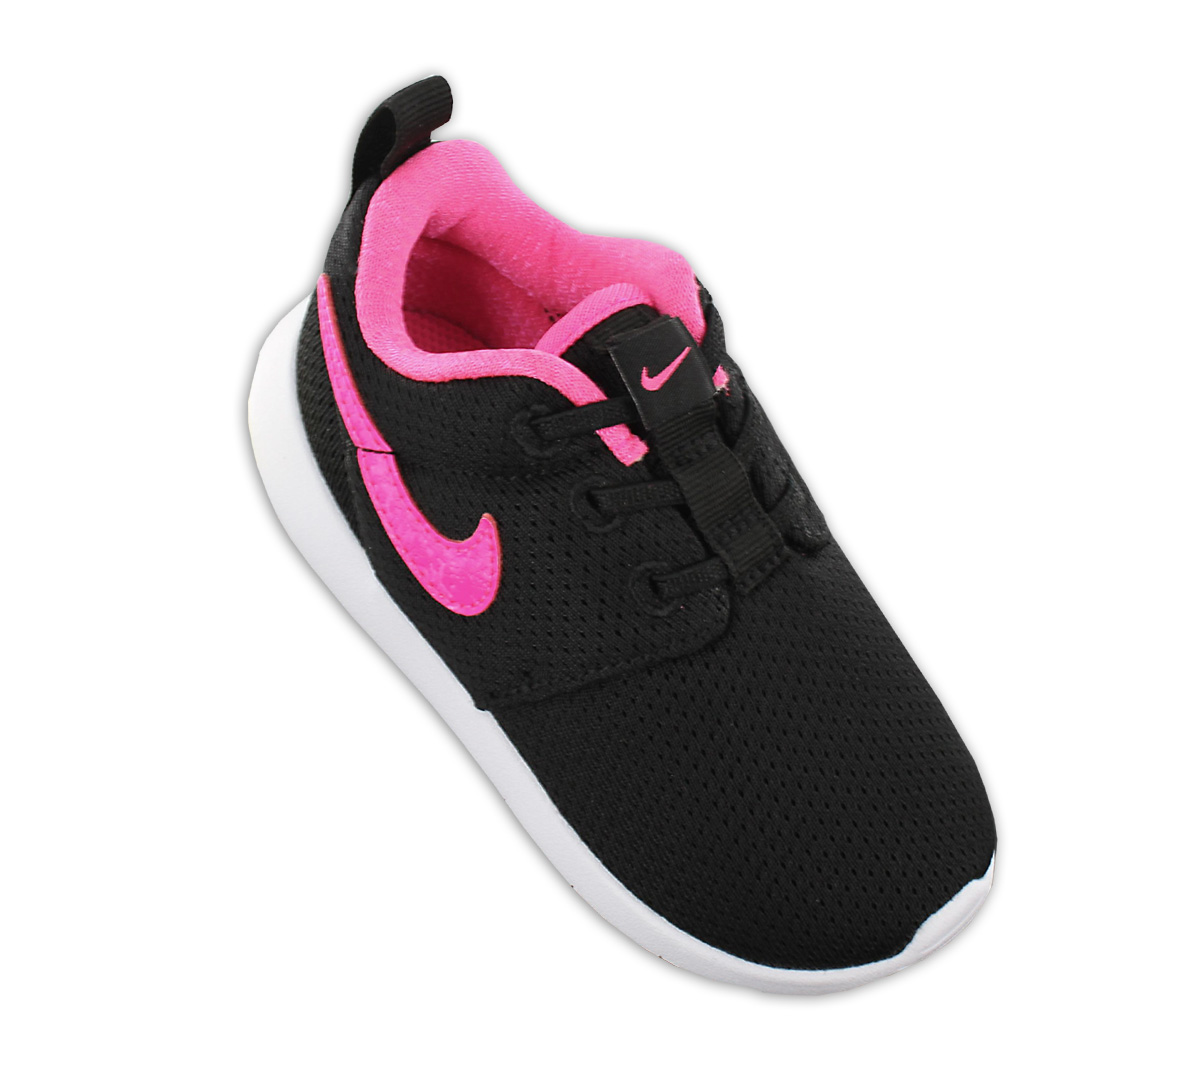 5760e6919219 NEW Nike Roshe One 749425-014 Mens Shoes Trainers Sneakers SALE